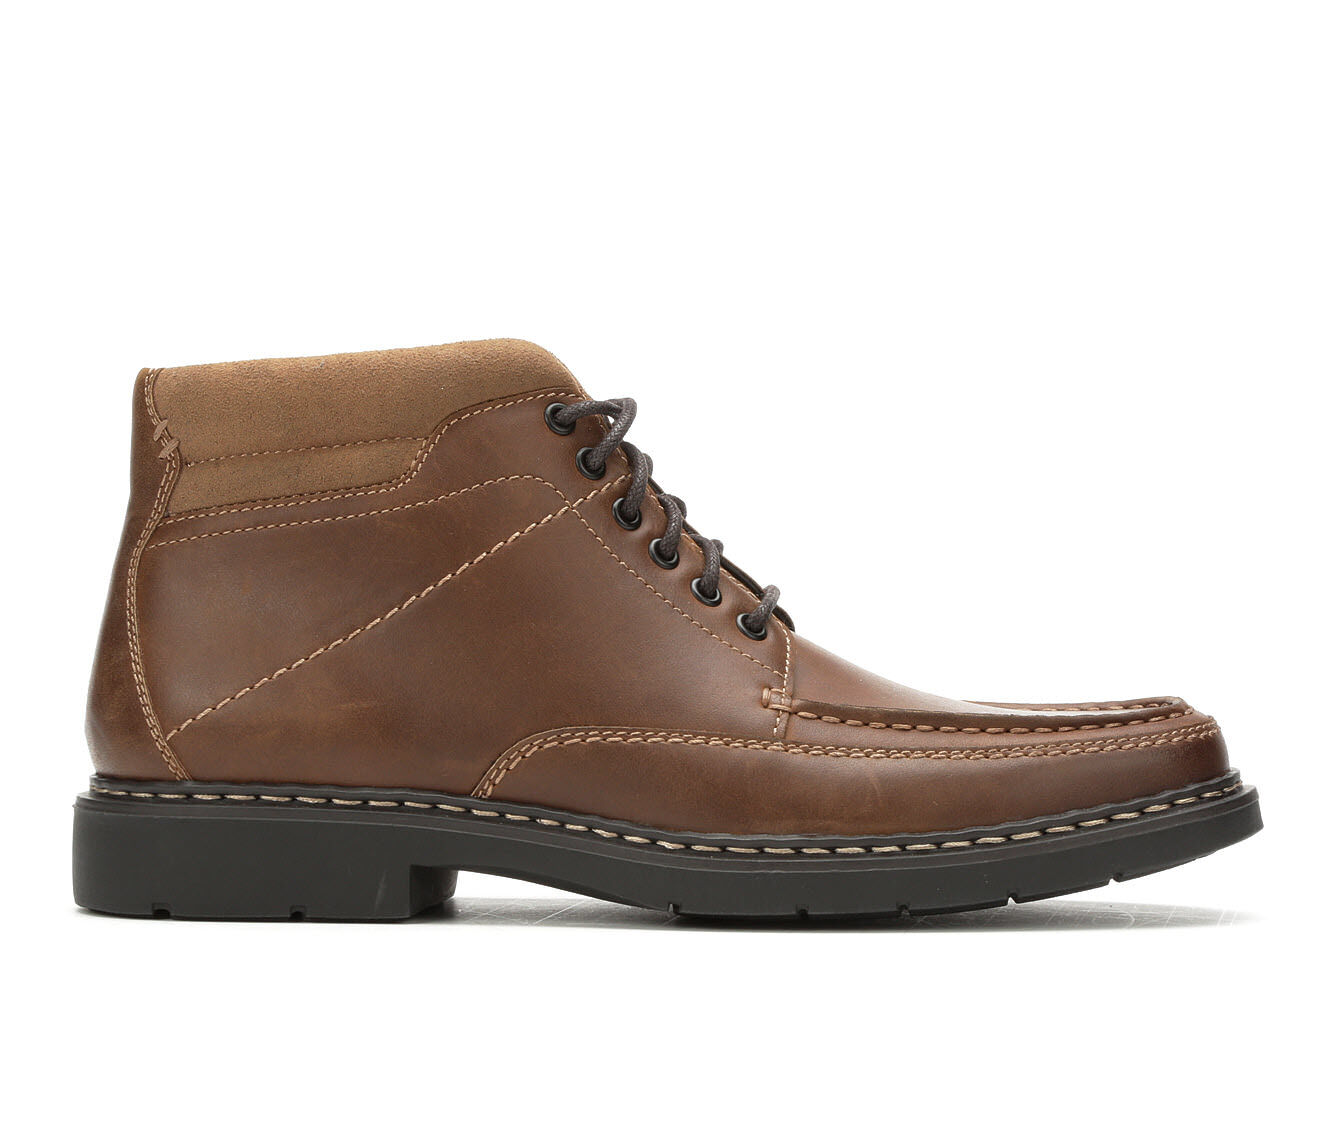 Men's Dockers Landers Boots Dark Tan